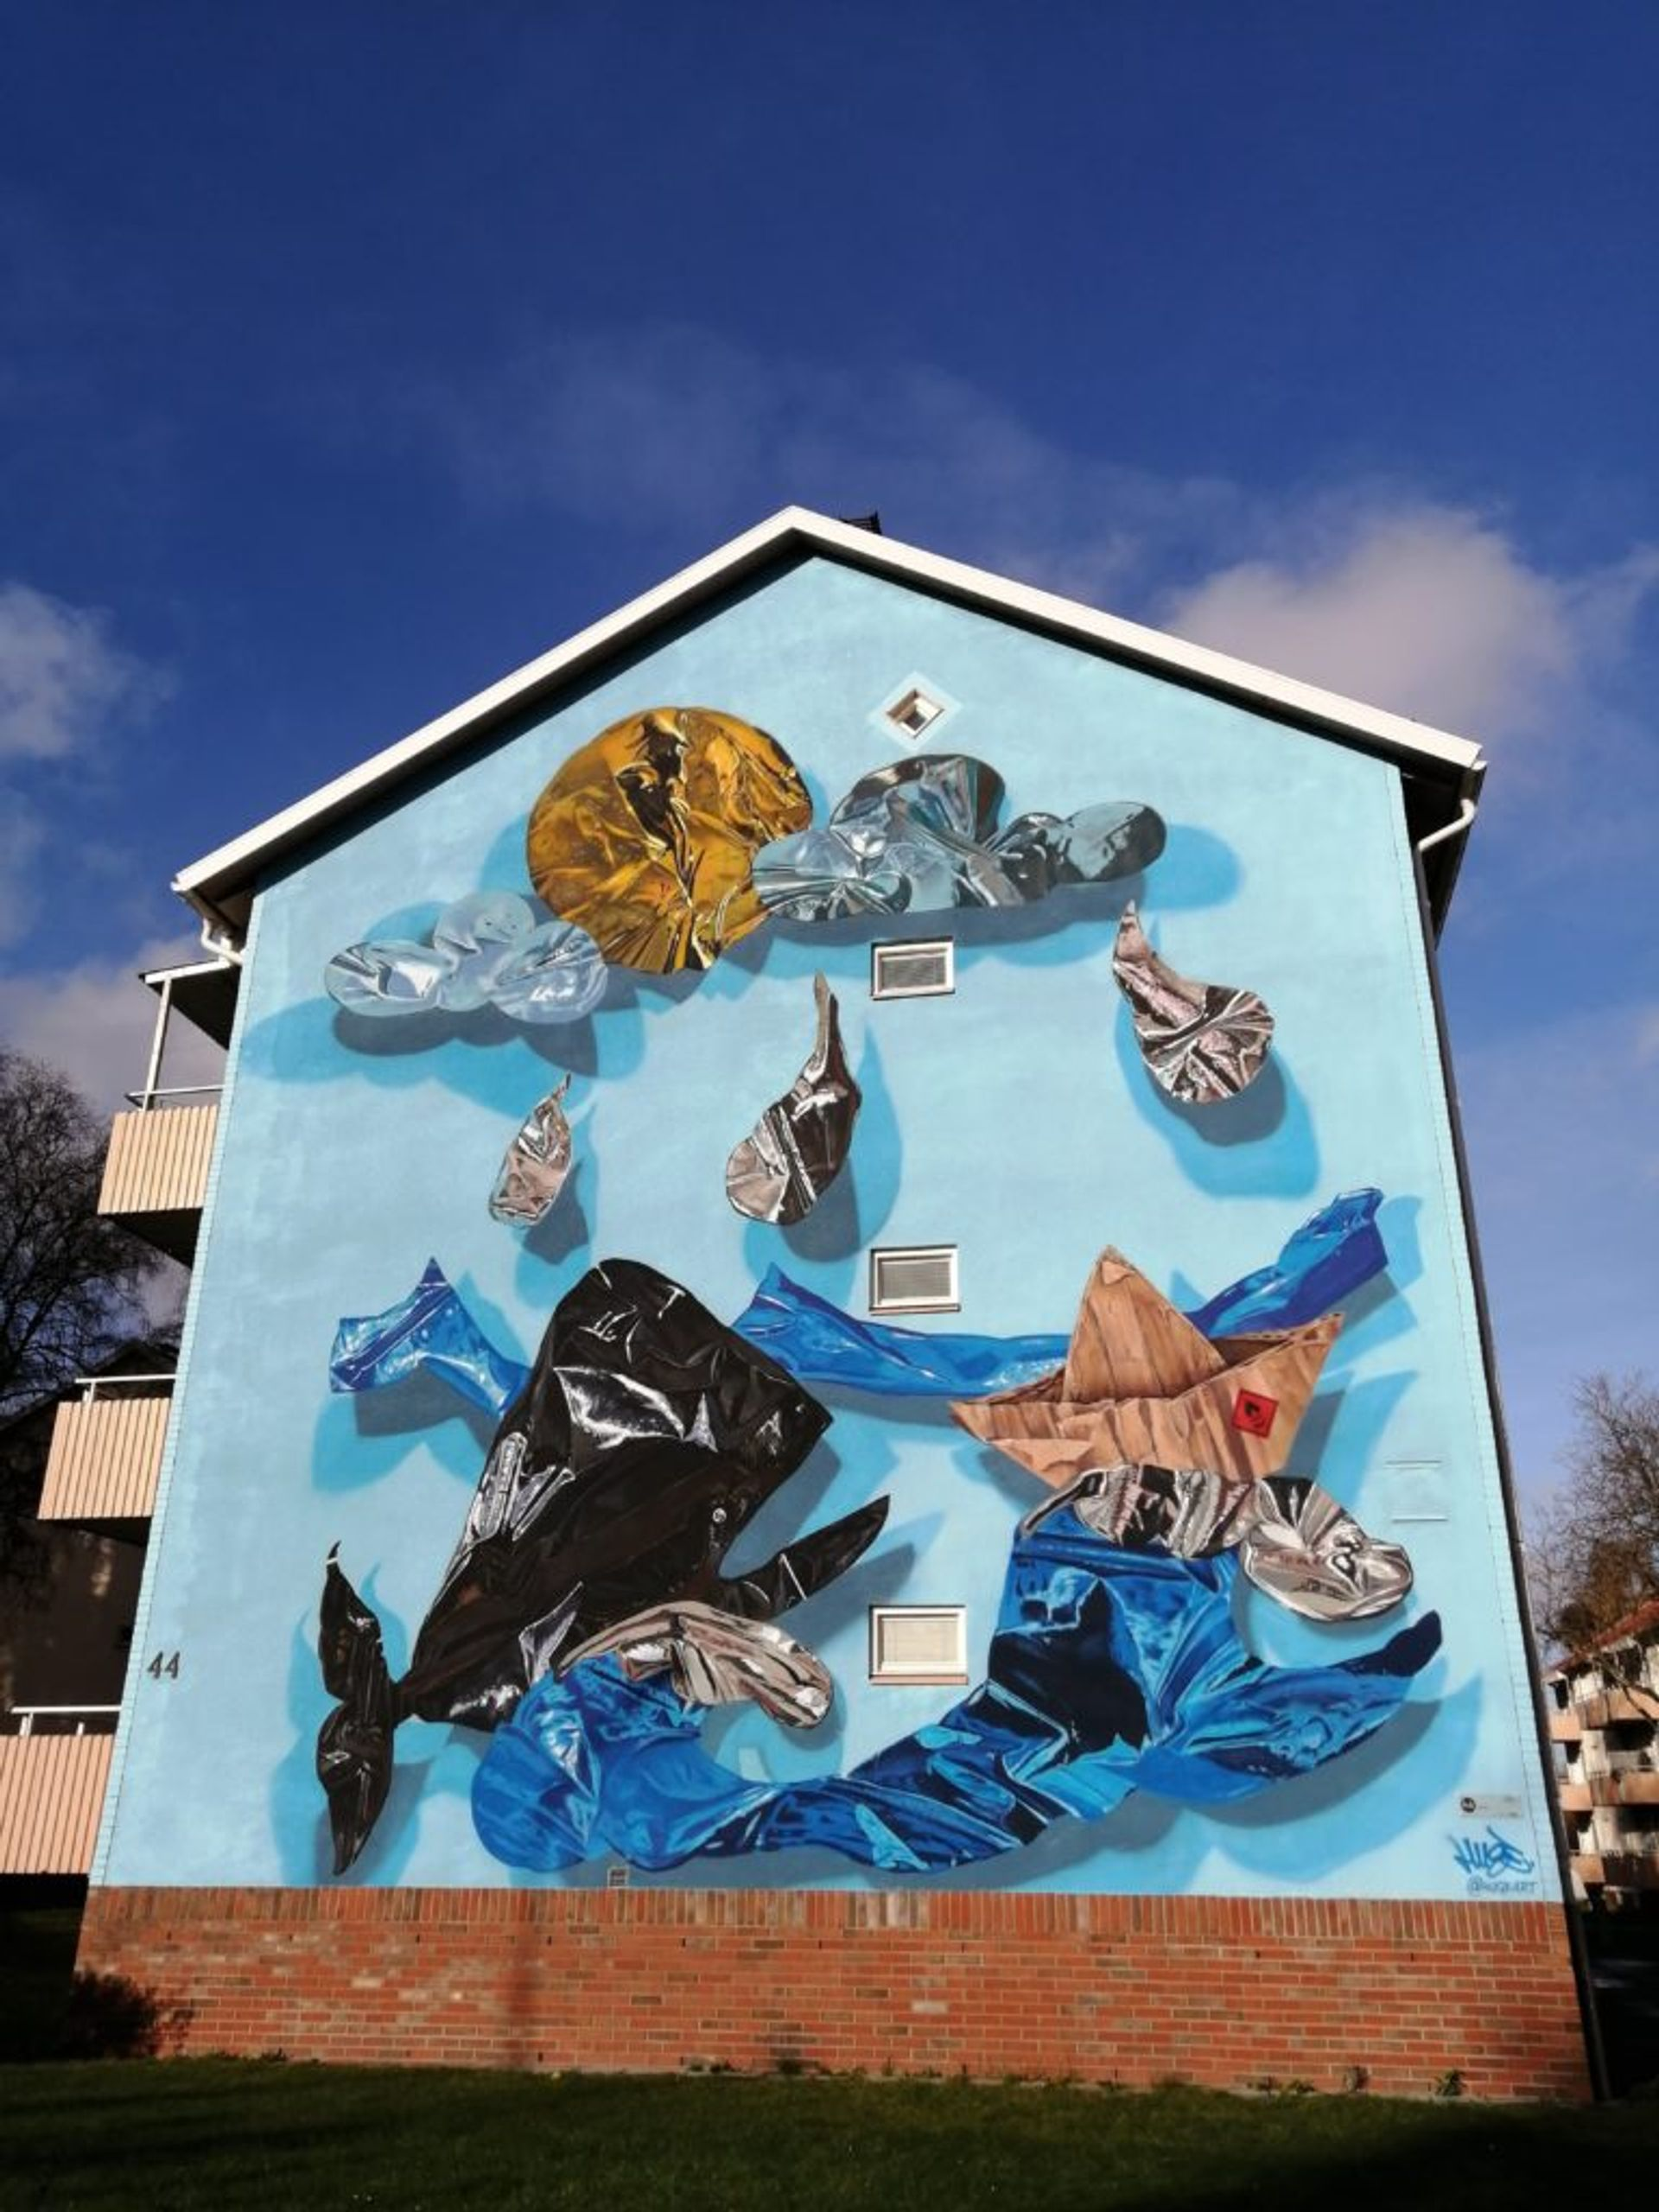 Mural of hyper-realistic balloon whale swimming in litter on the side of a residential building in Borås.